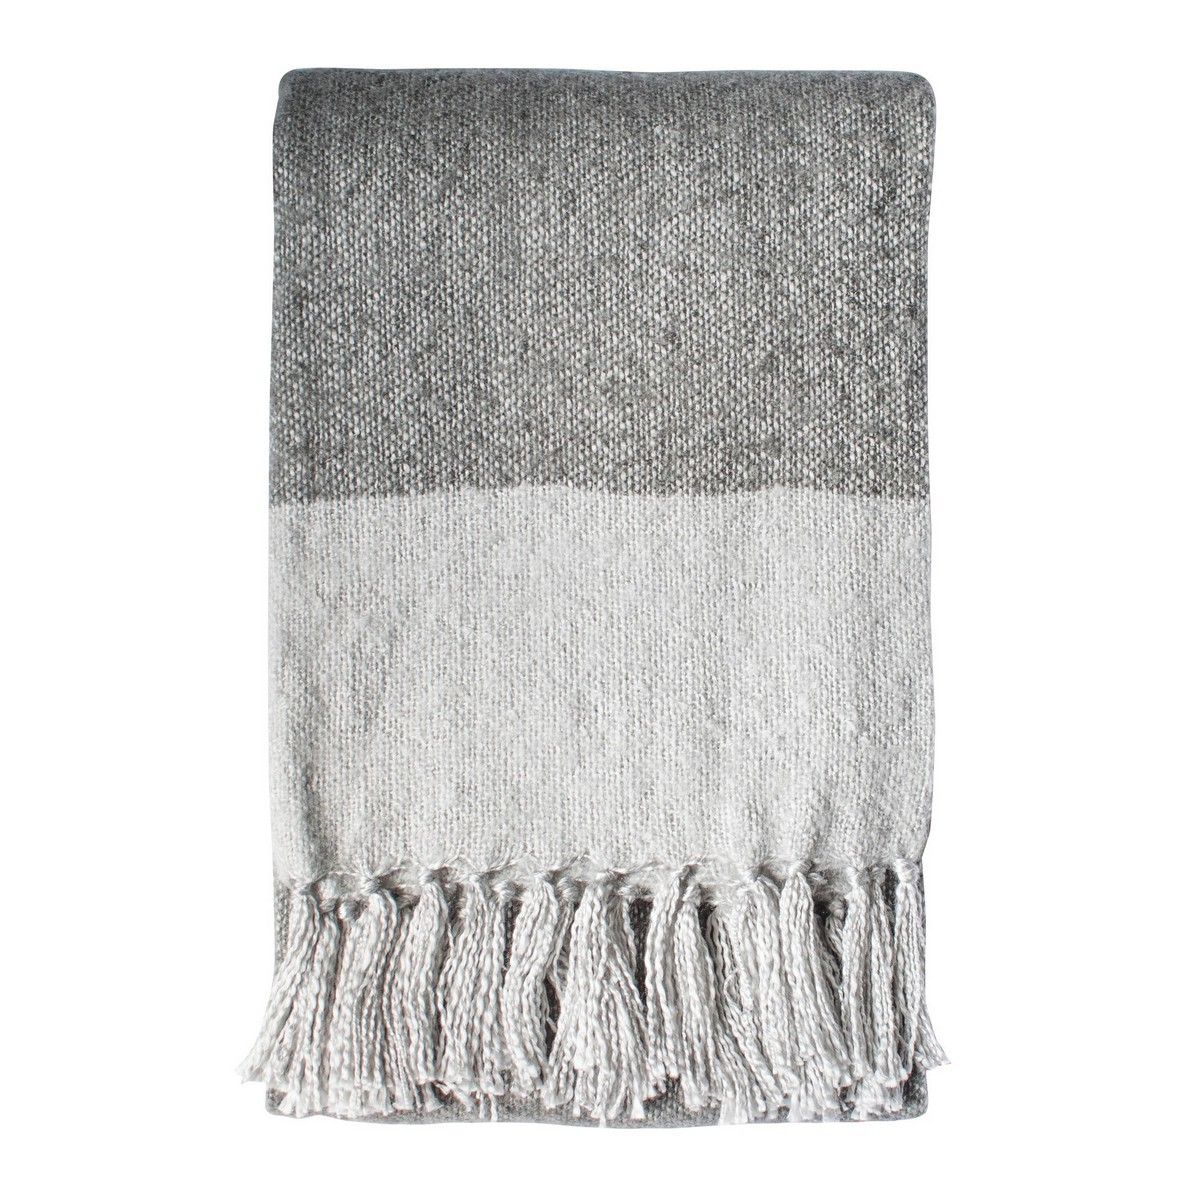 Lexden Tonal Faux Mohair Throw, Slate / Silver